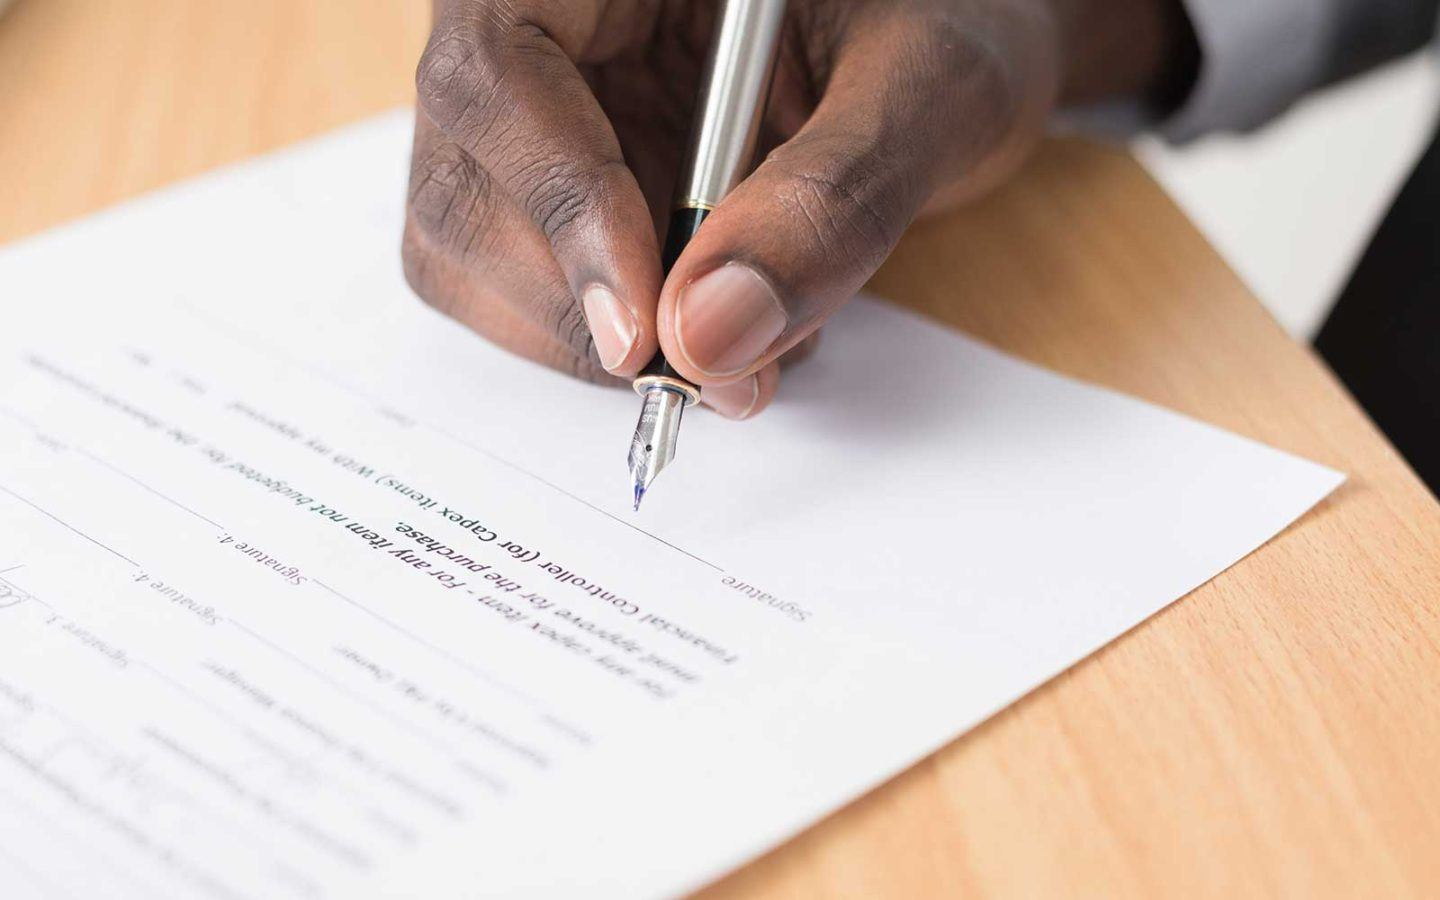 close up photo of a man's hand holding a pen and signing a document